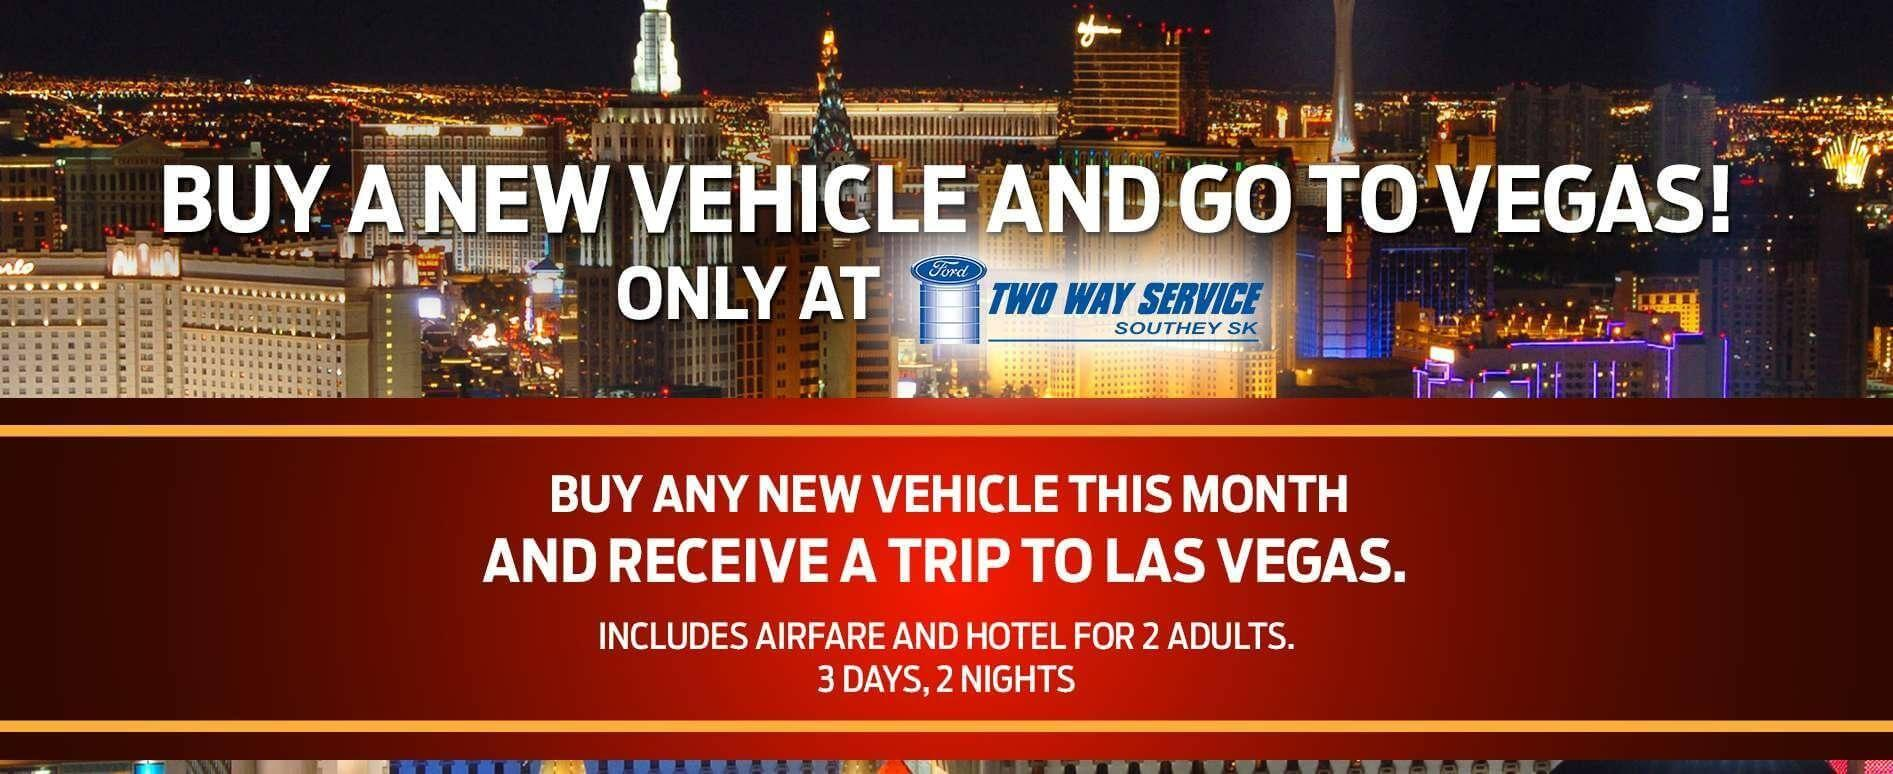 Las Vegas Two Way Service Ford